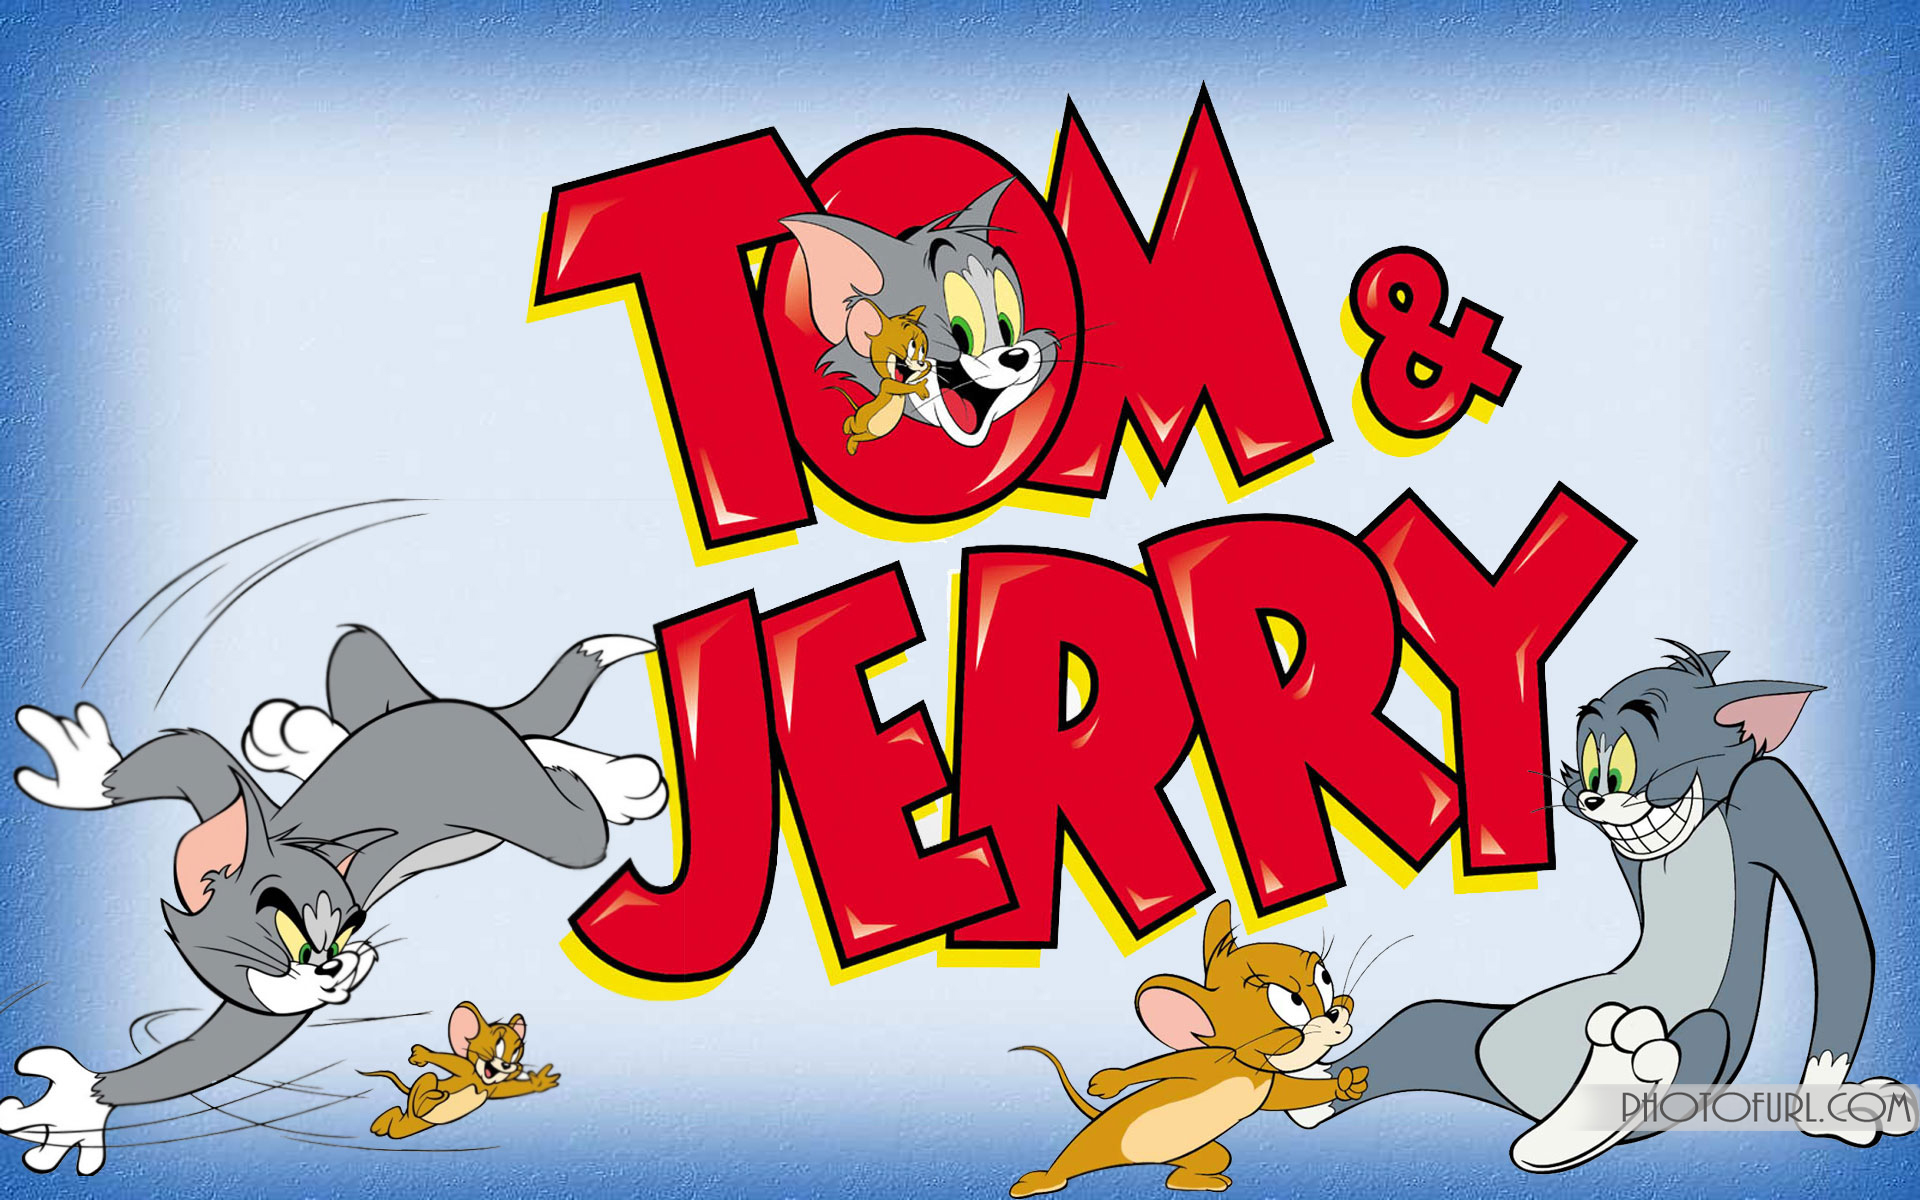 Wallpaper Hd Iphone Tom Jerry Free Download 1920x1200